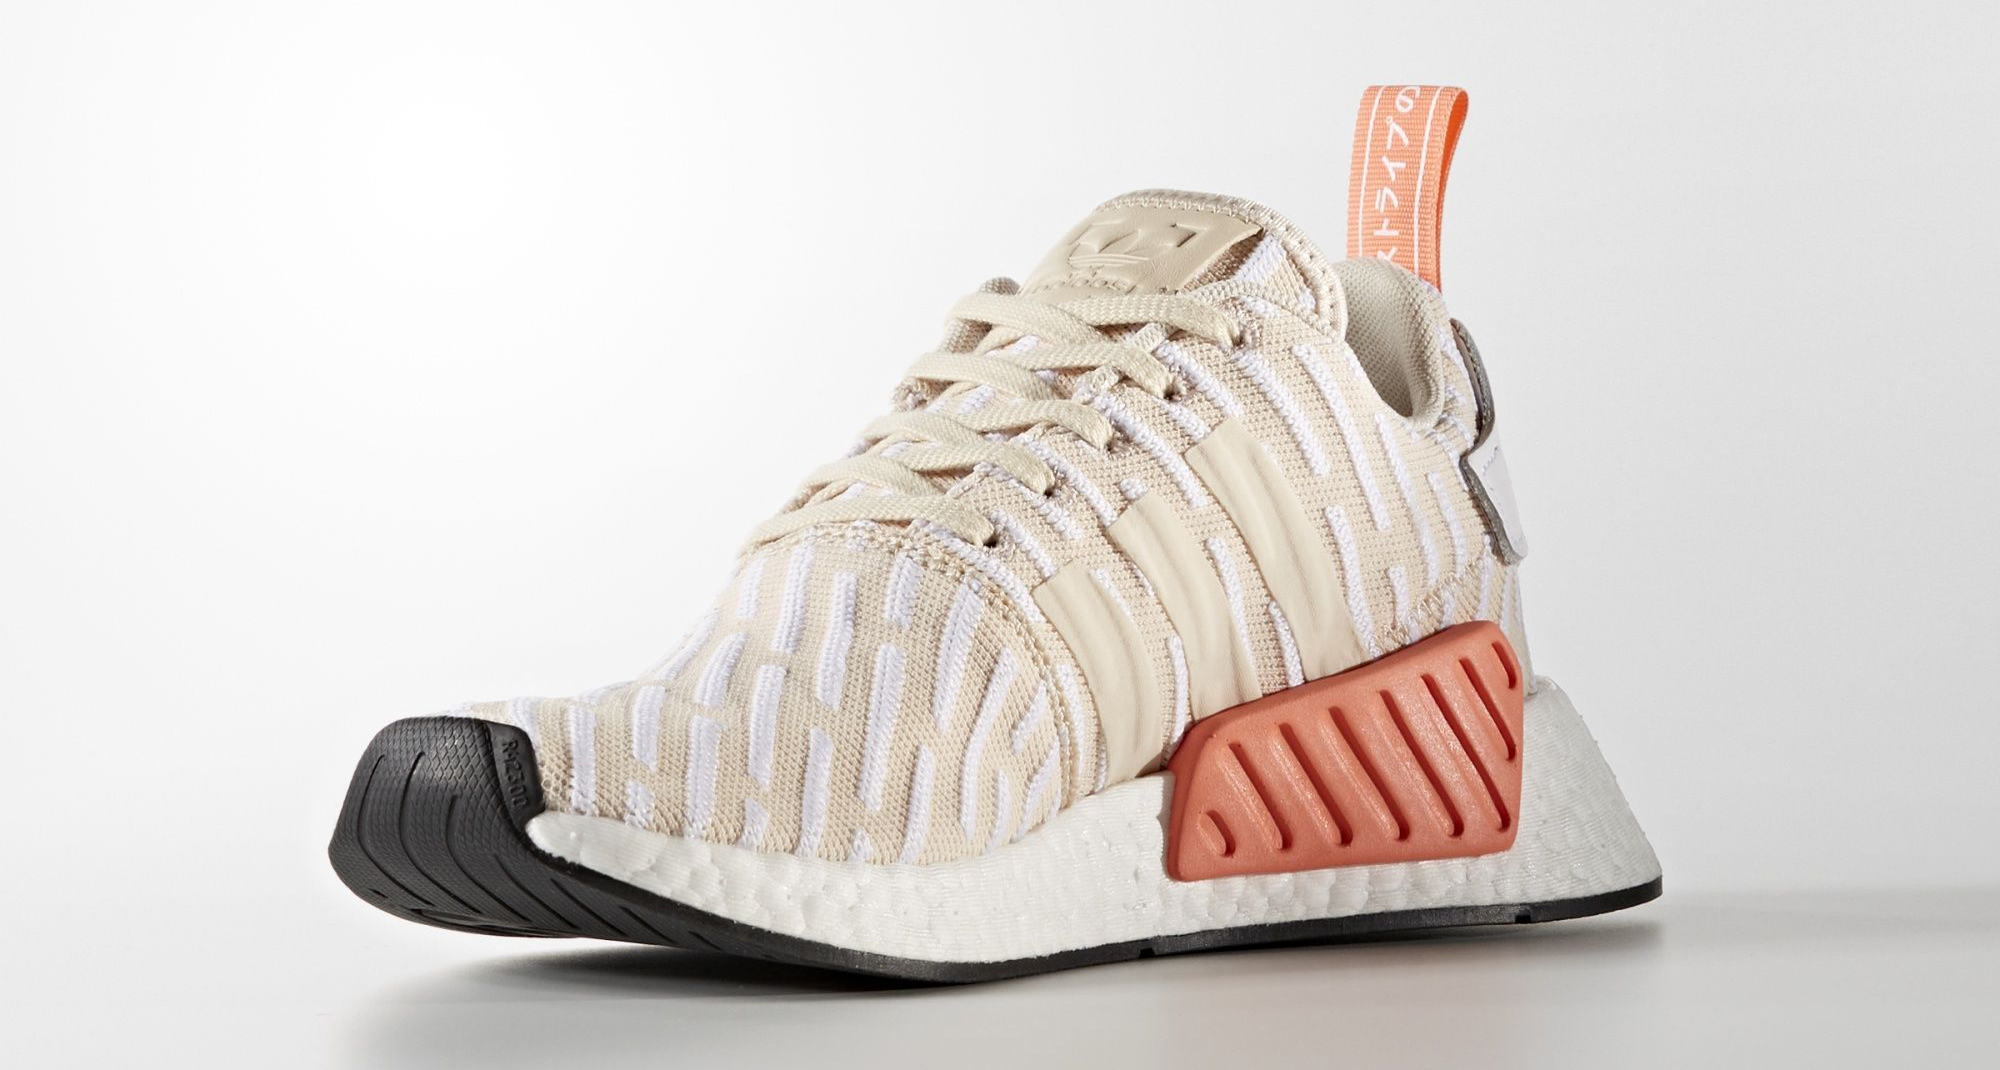 r42300 adidas buy clothes shoes online